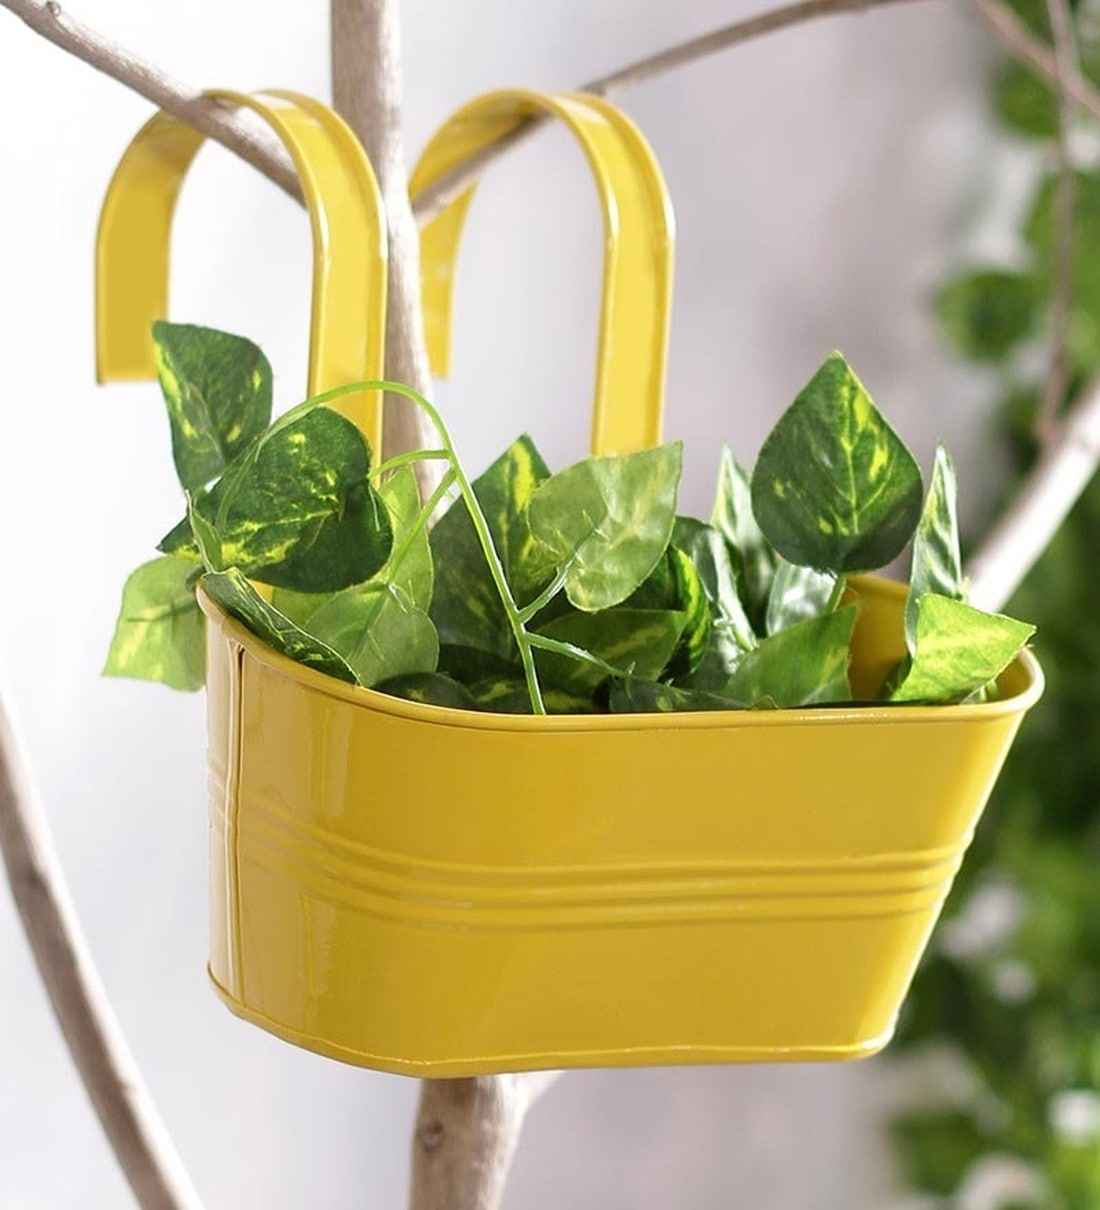 Picture of: Buy Yellow Metal Oval Metal Railing Planter By Green Girgit Online Railing Planters Pots Planters Home Decor Pepperfry Product